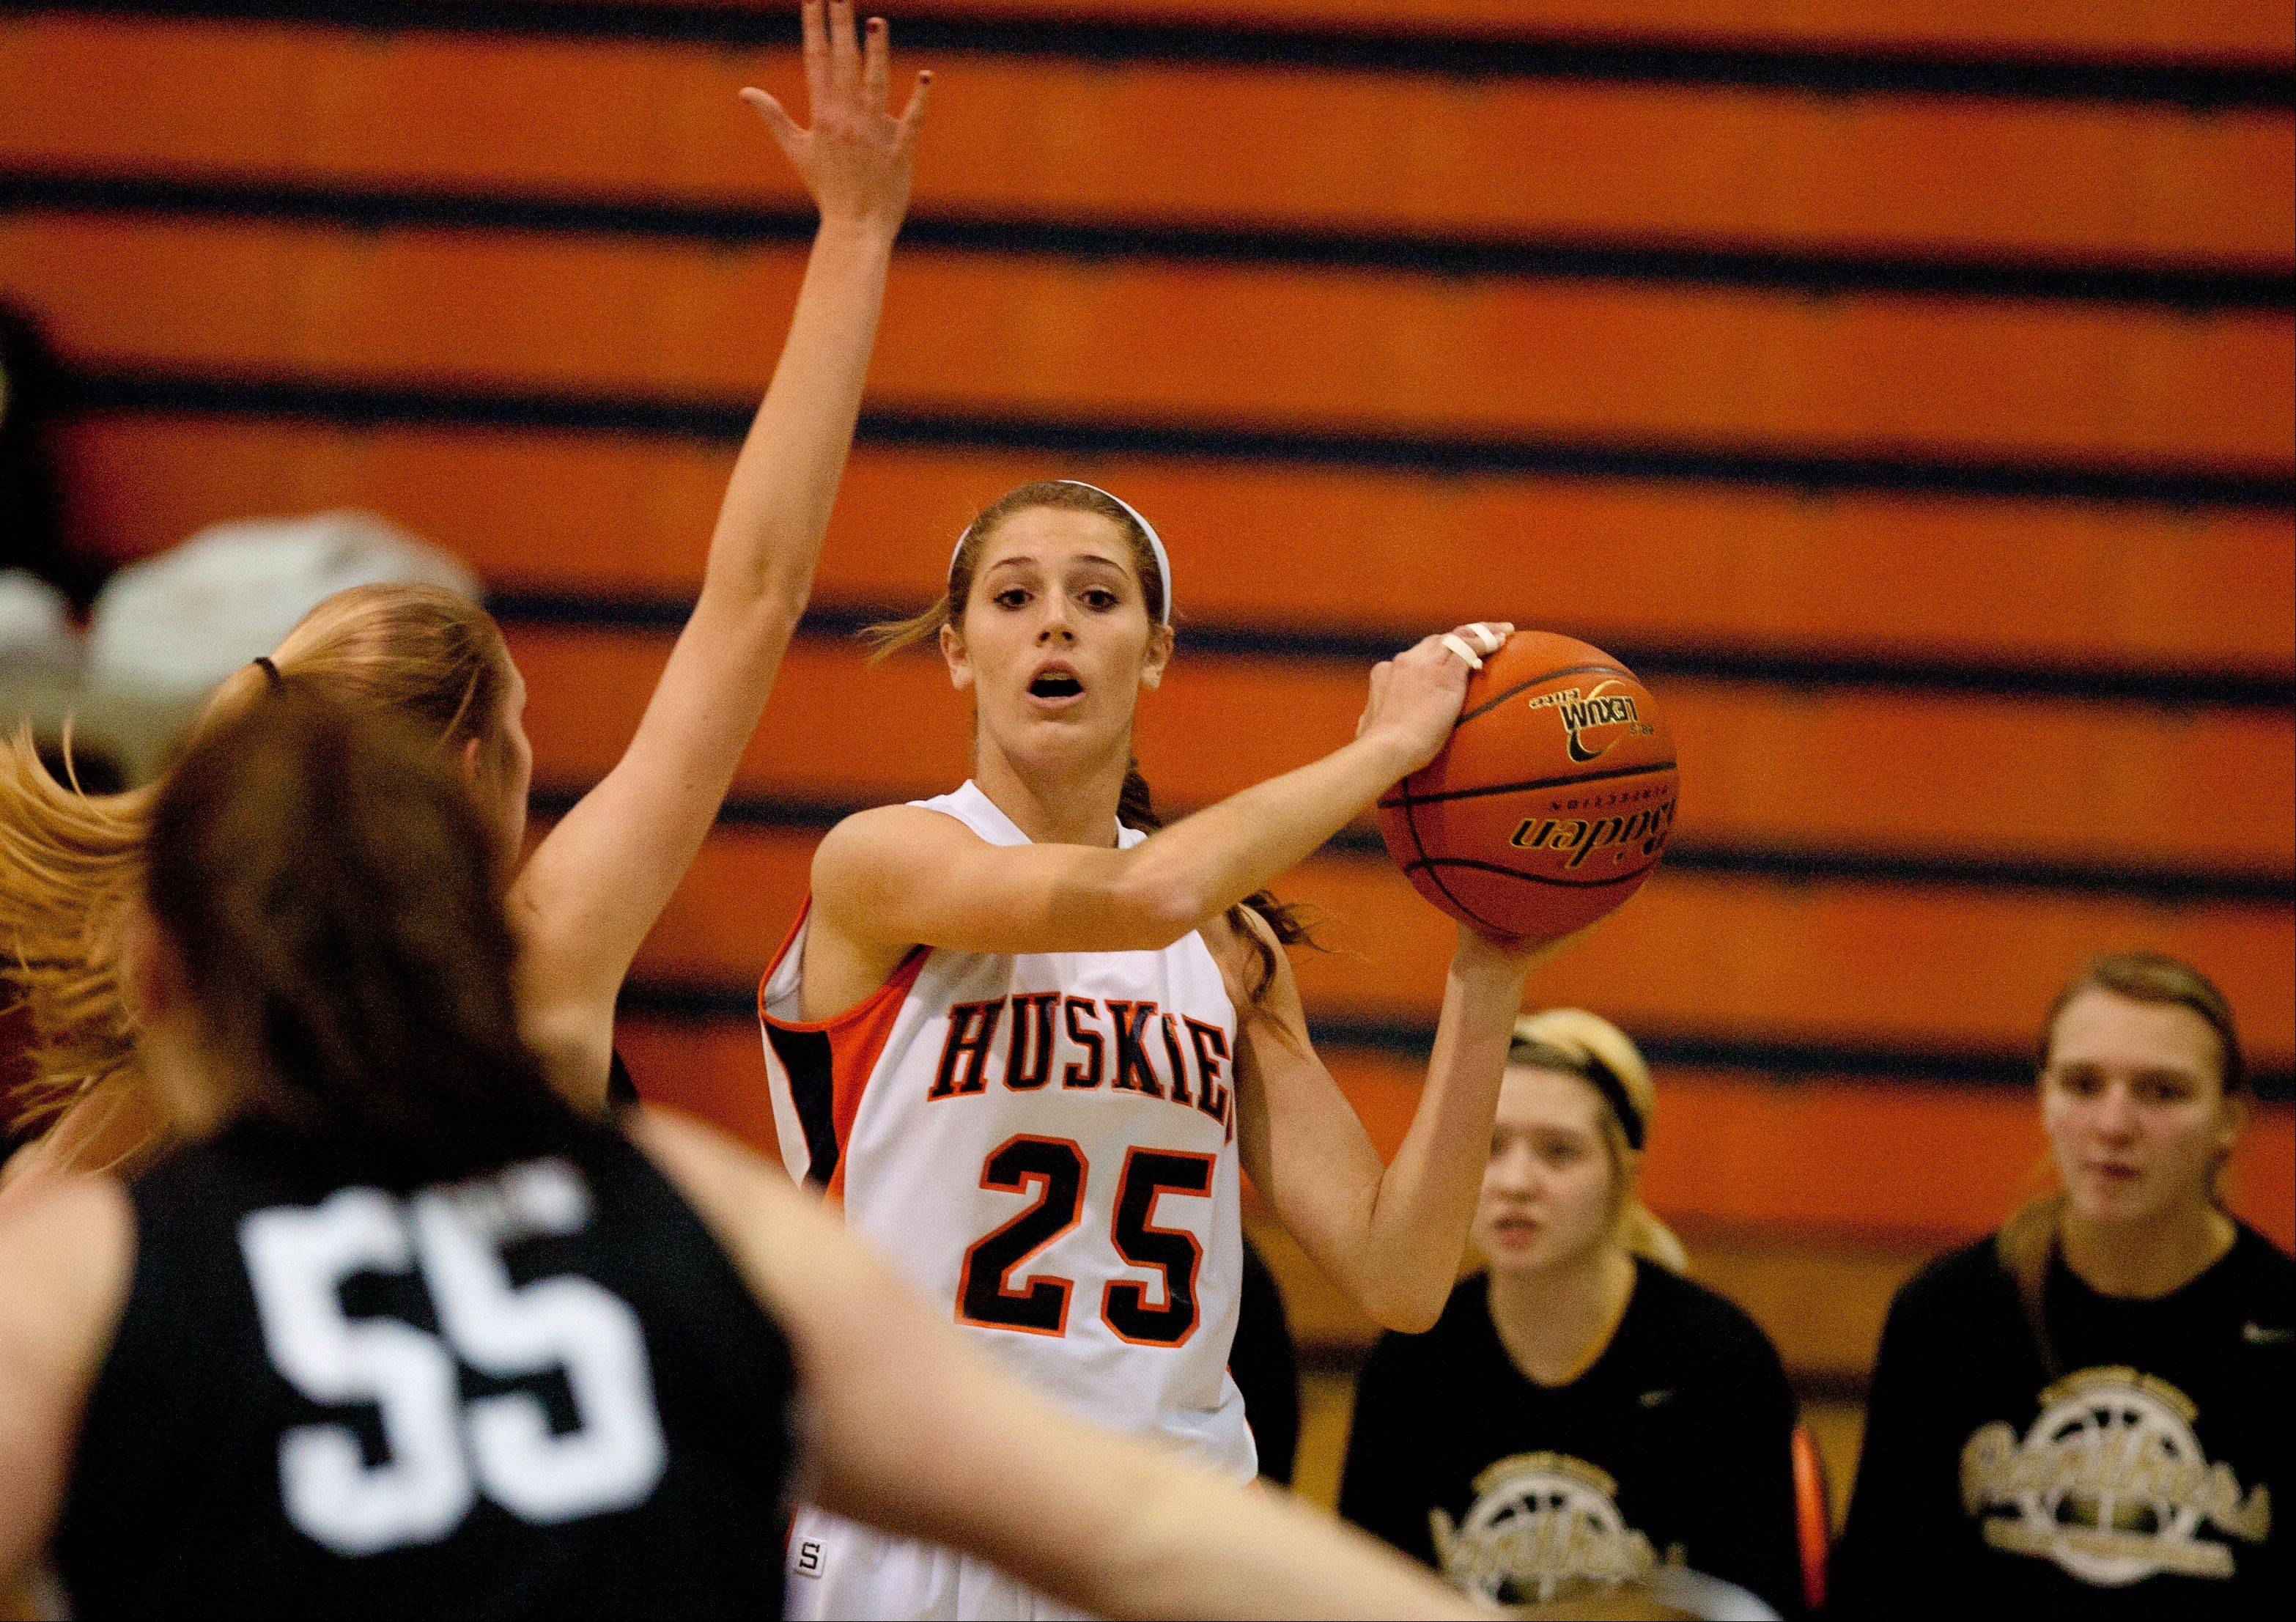 Naperville North's Kayla Sharples looks to pass the ball.